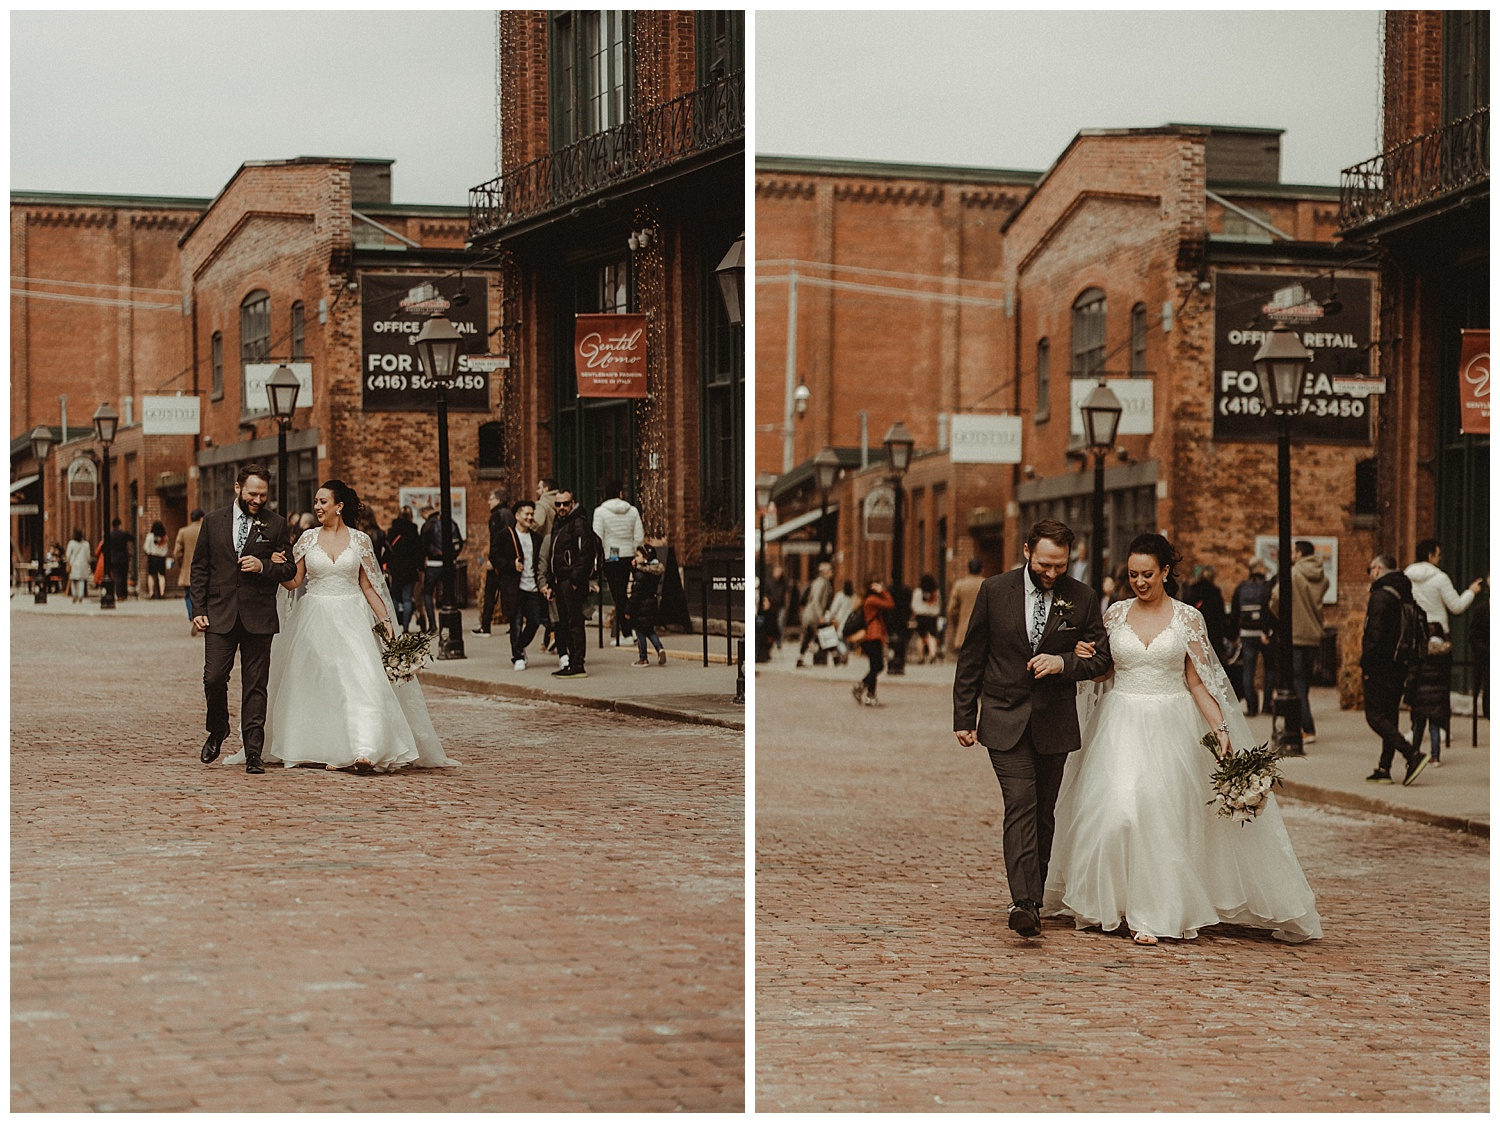 Katie Marie Photography | Archeo Wedding Arta Gallery Wedding | Distillery District Wedding | Toronto Wedding Photographer | Hamilton Toronto Ontario Wedding Photographer |_0016.jpg